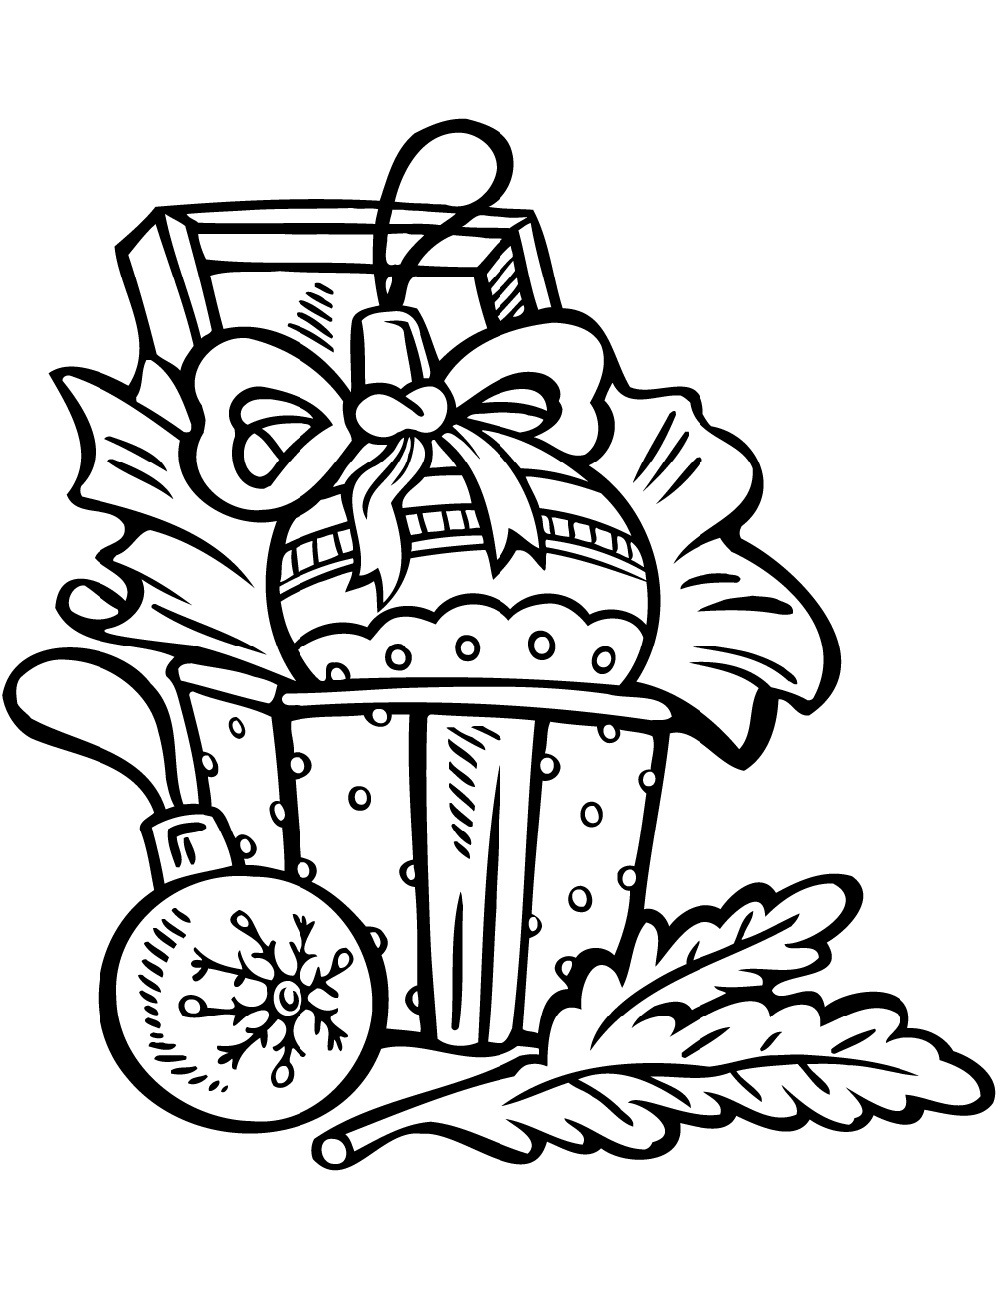 Christmas Ornament Coloring Pages To Print